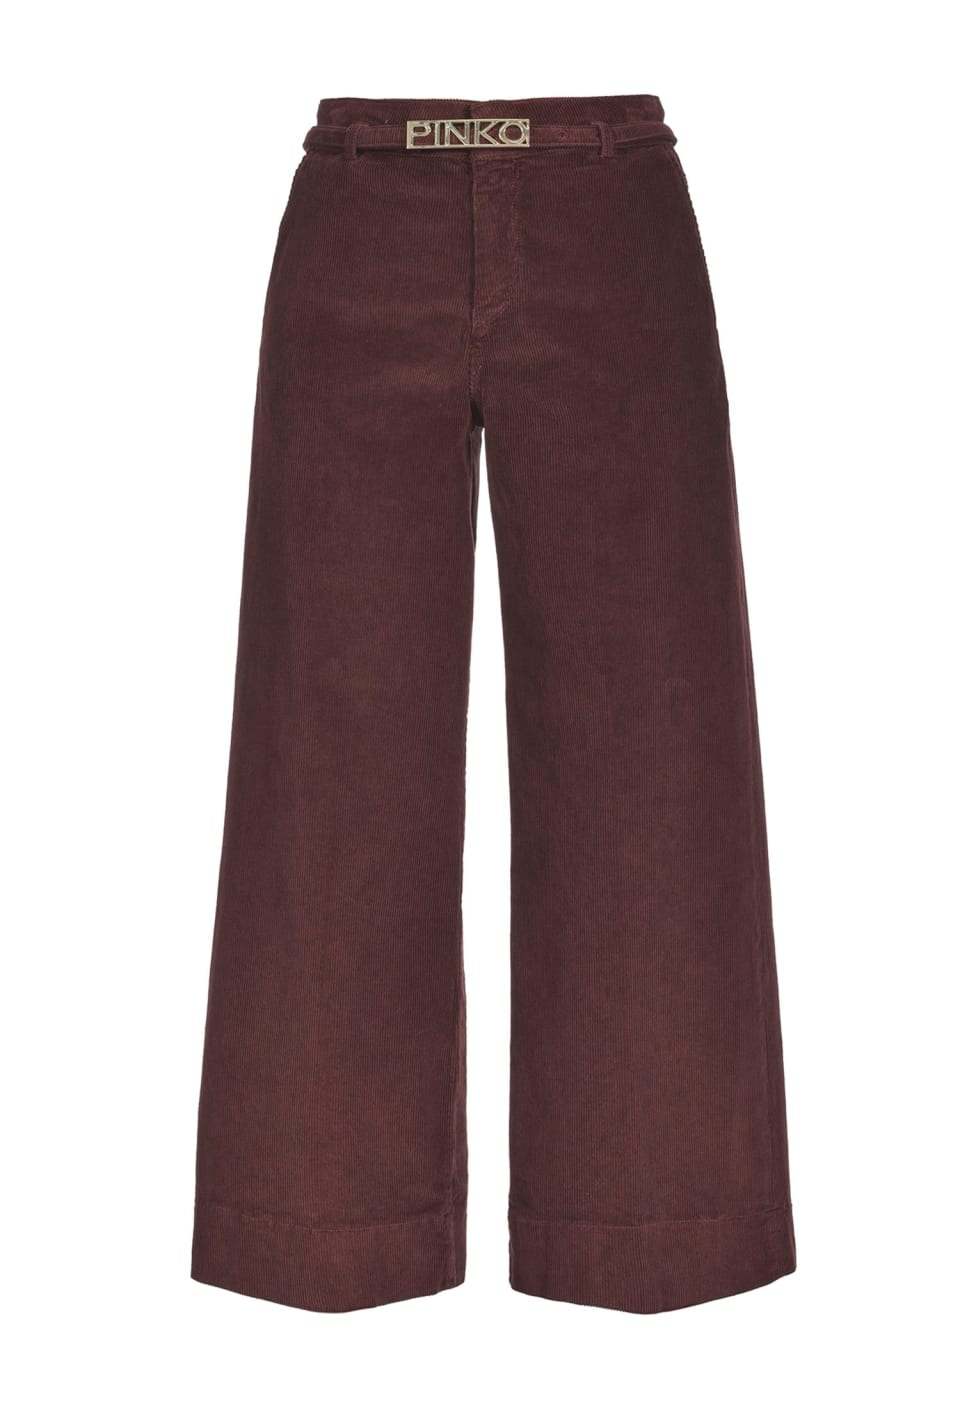 Slim fit palazzo trousers in fine-ribbed corduroy